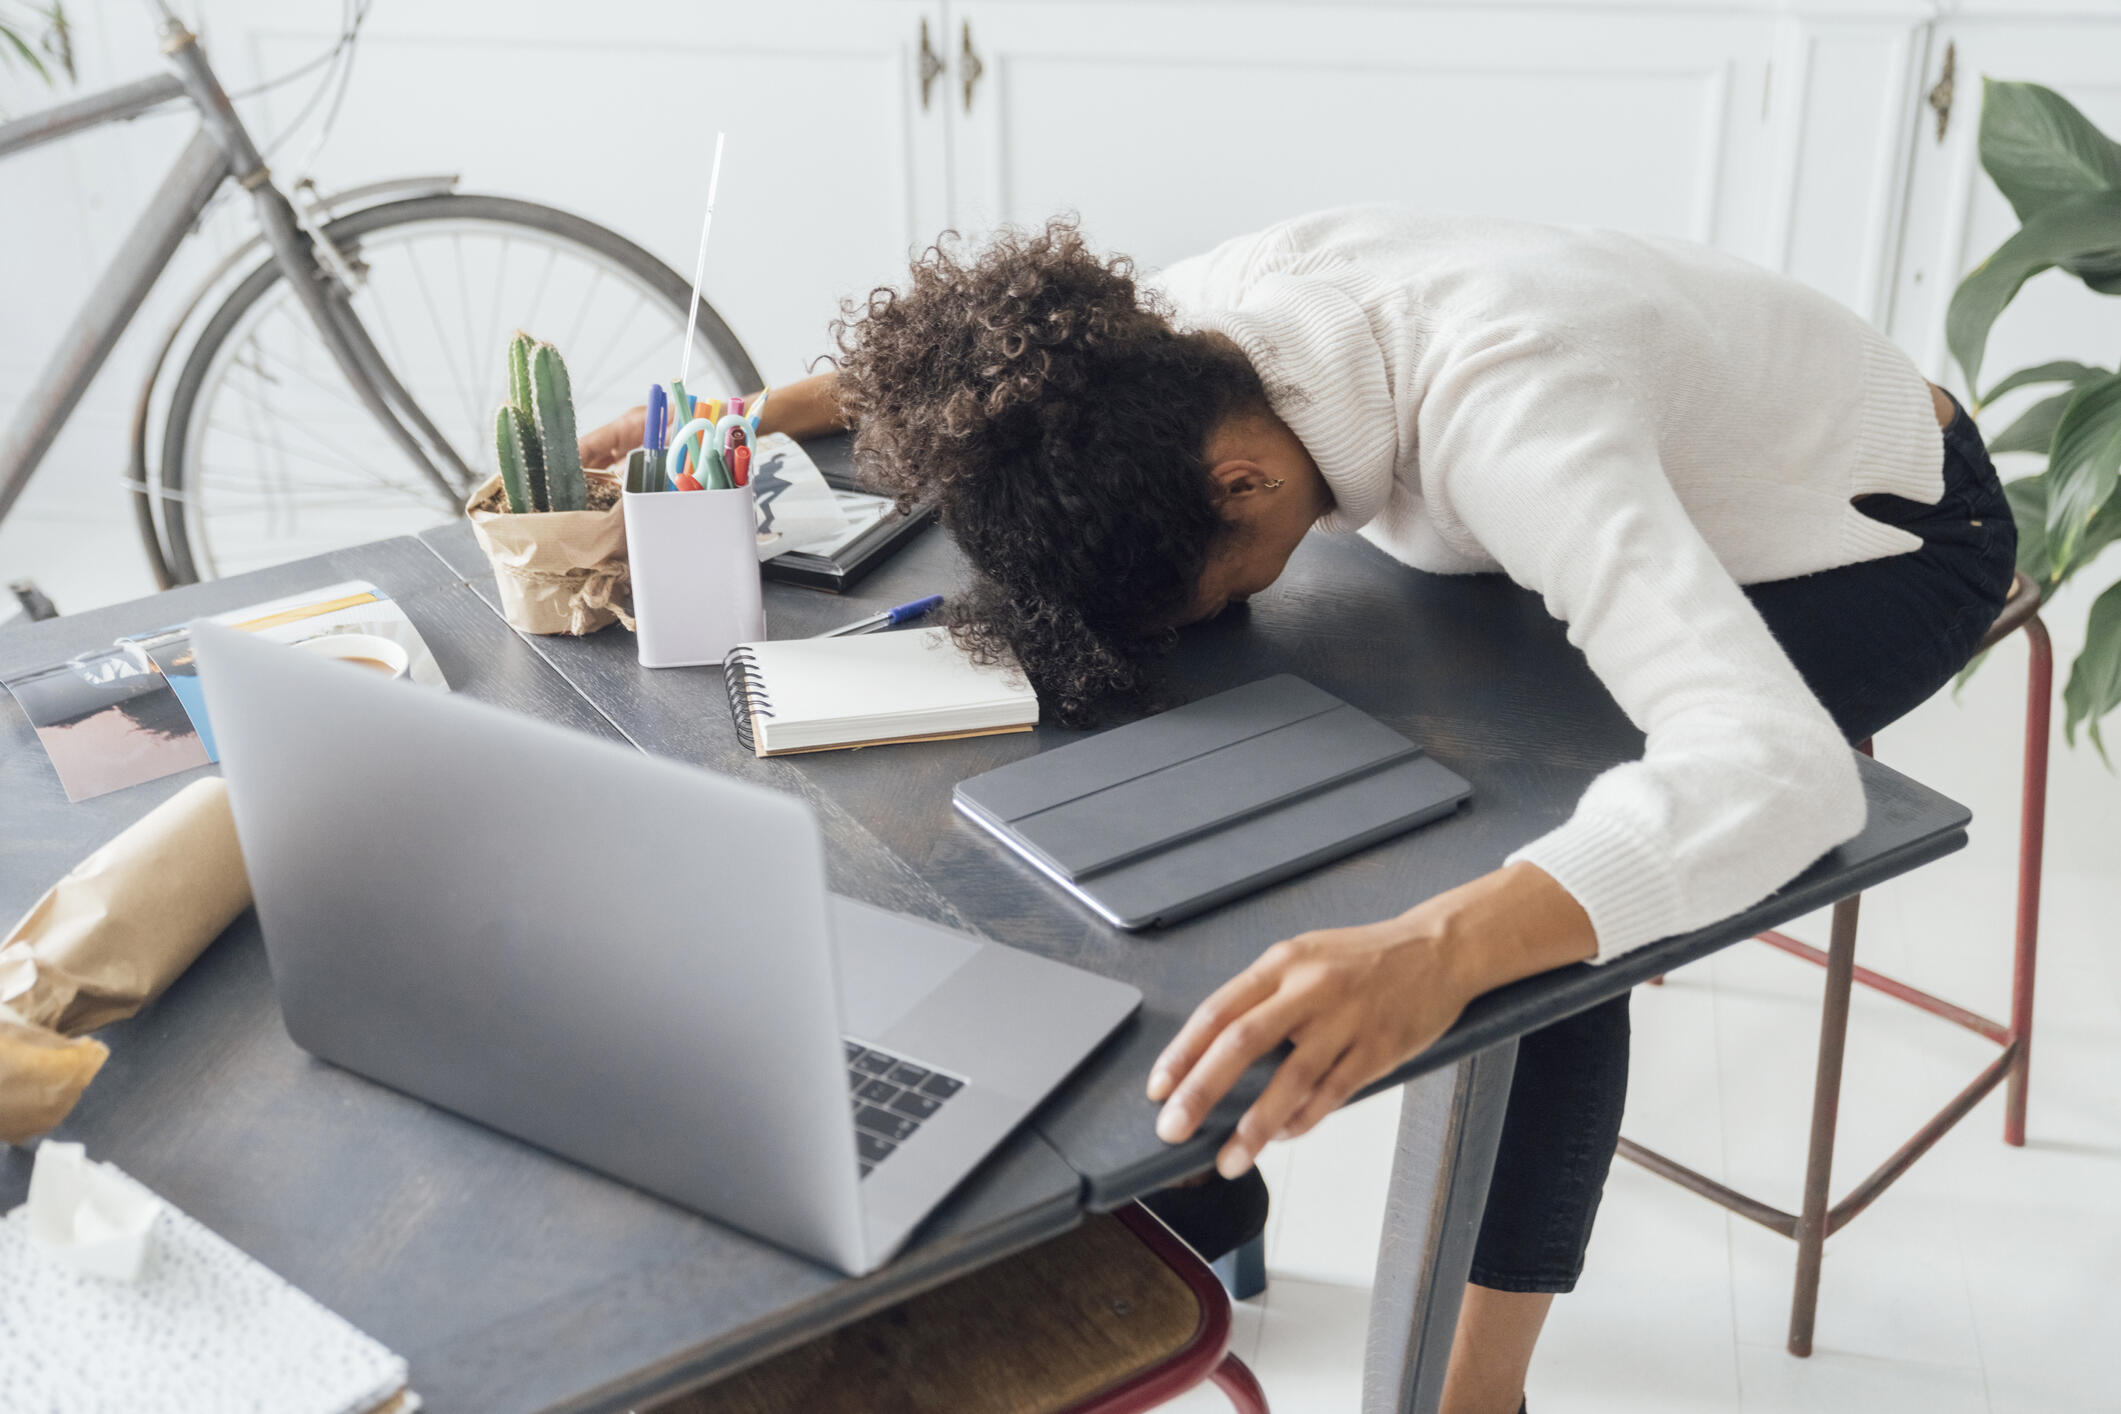 A dark-haired woman in a white shirt slumps over her desk, feeling stressed.